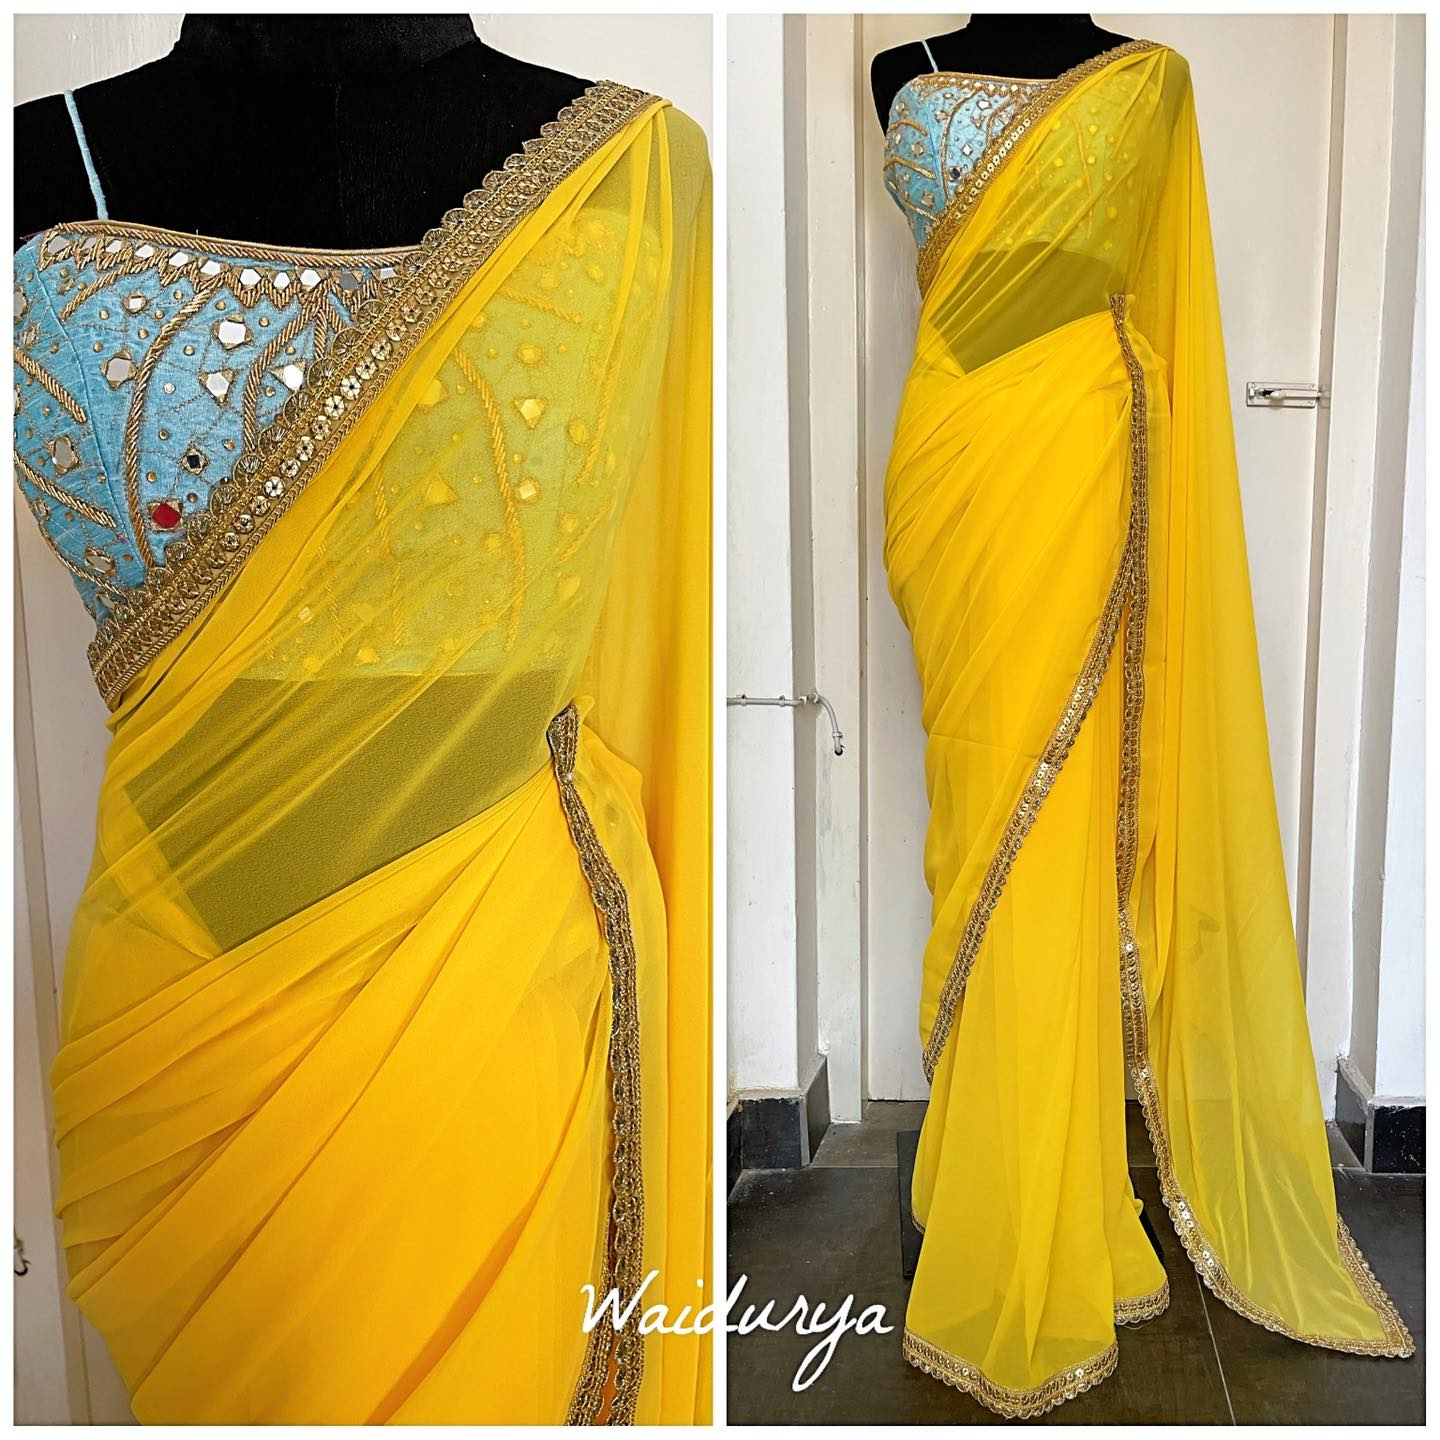 The raw sill sky blue blouse is 100% hand embroidered in mirror work and zardozi embroidery. The sari is a canary yellow georgette one with gold sequin and thread work and a scalloped edge. Love the contrasting colors and the design of this one for summer!! 2021-07-24